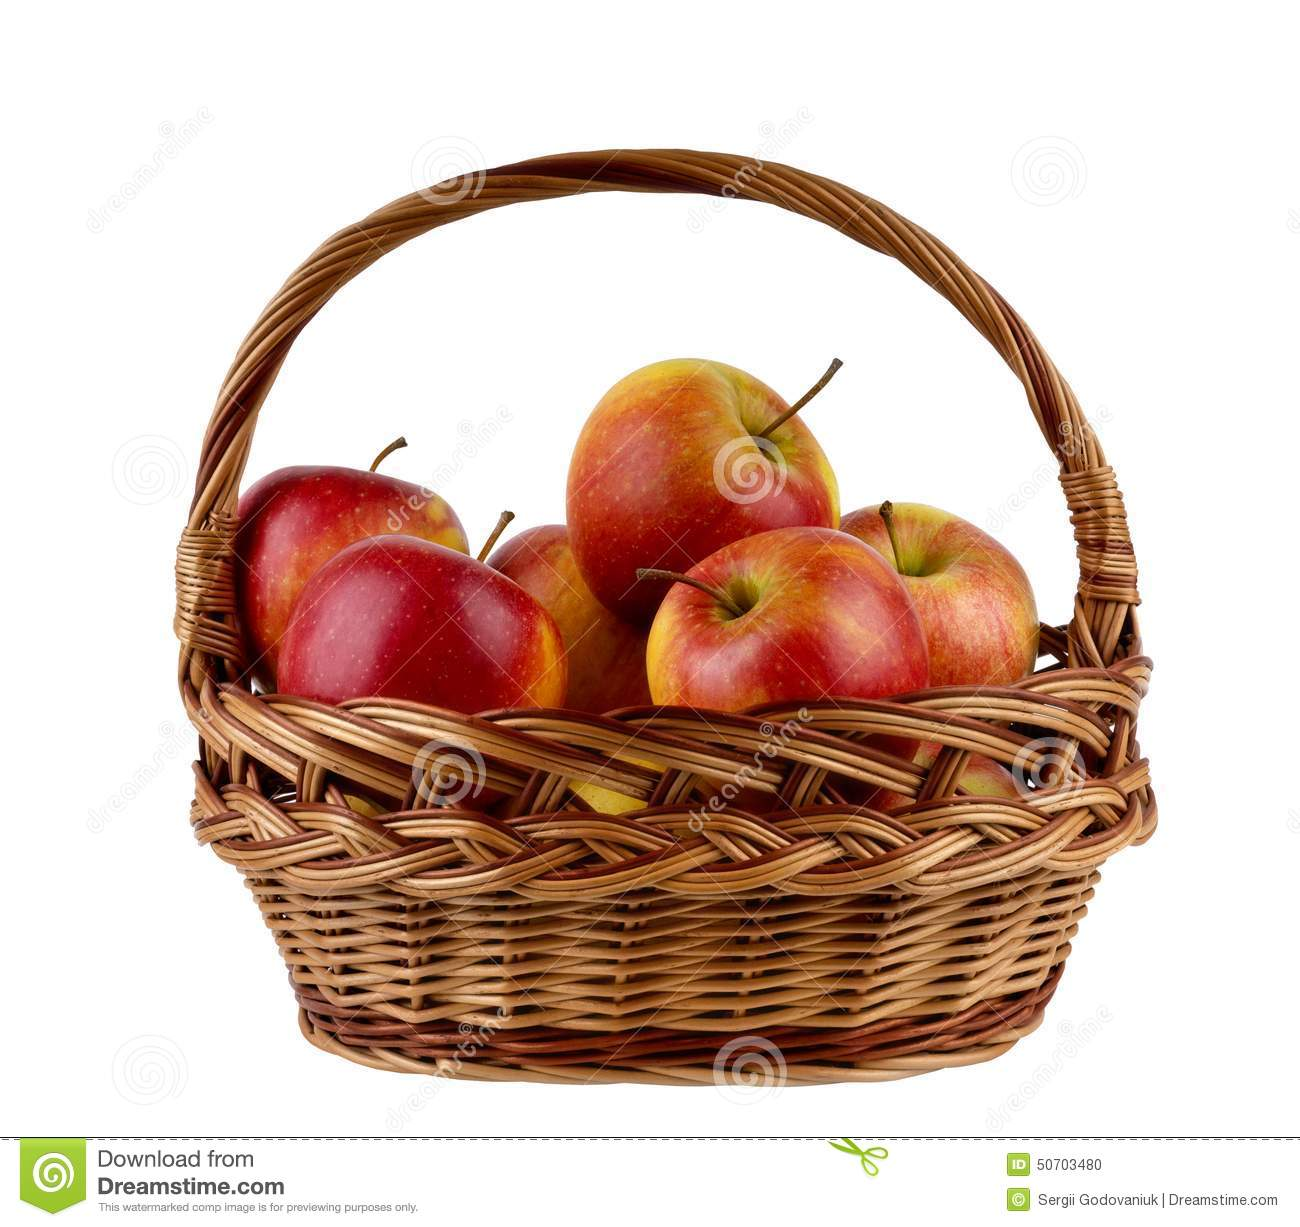 Apples in the basket stock photo. Image of apple, full ...